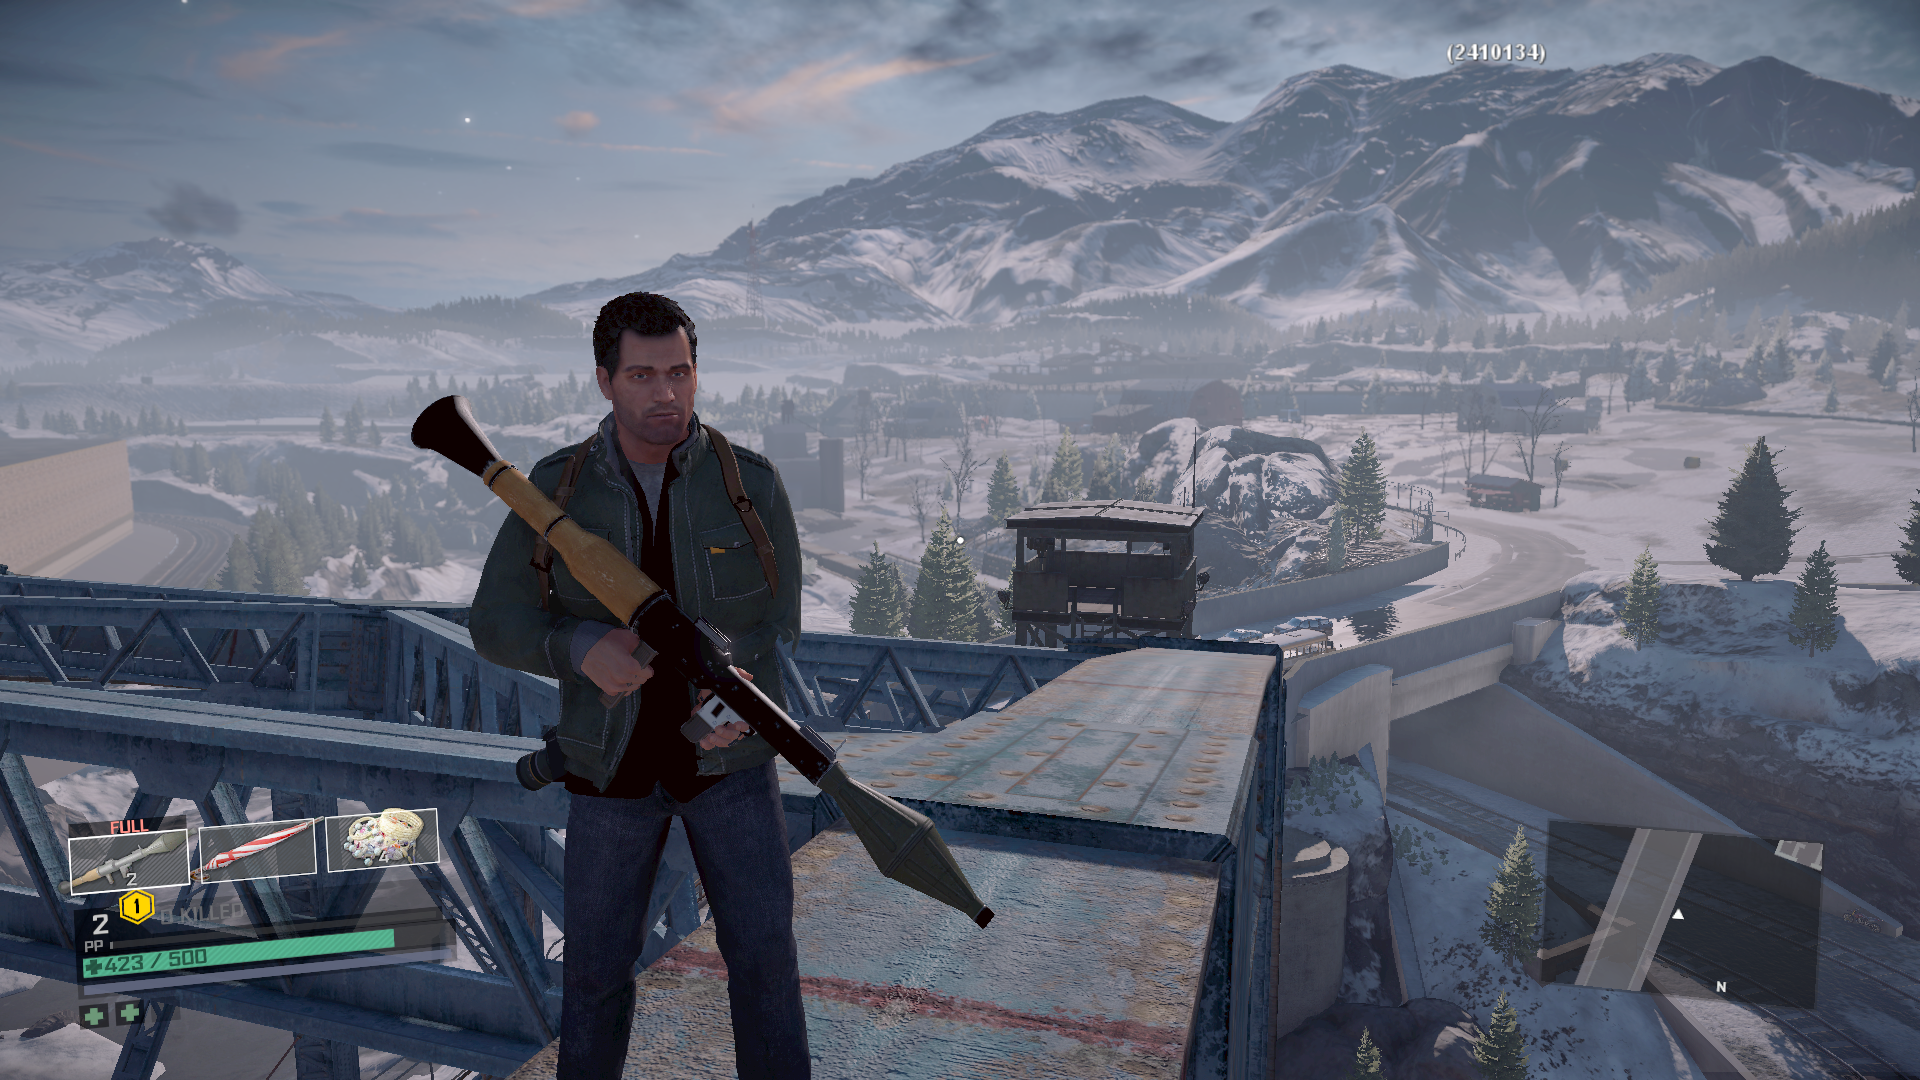 Dead rising 4 easily level up emergency shelters with this trick malvernweather Choice Image